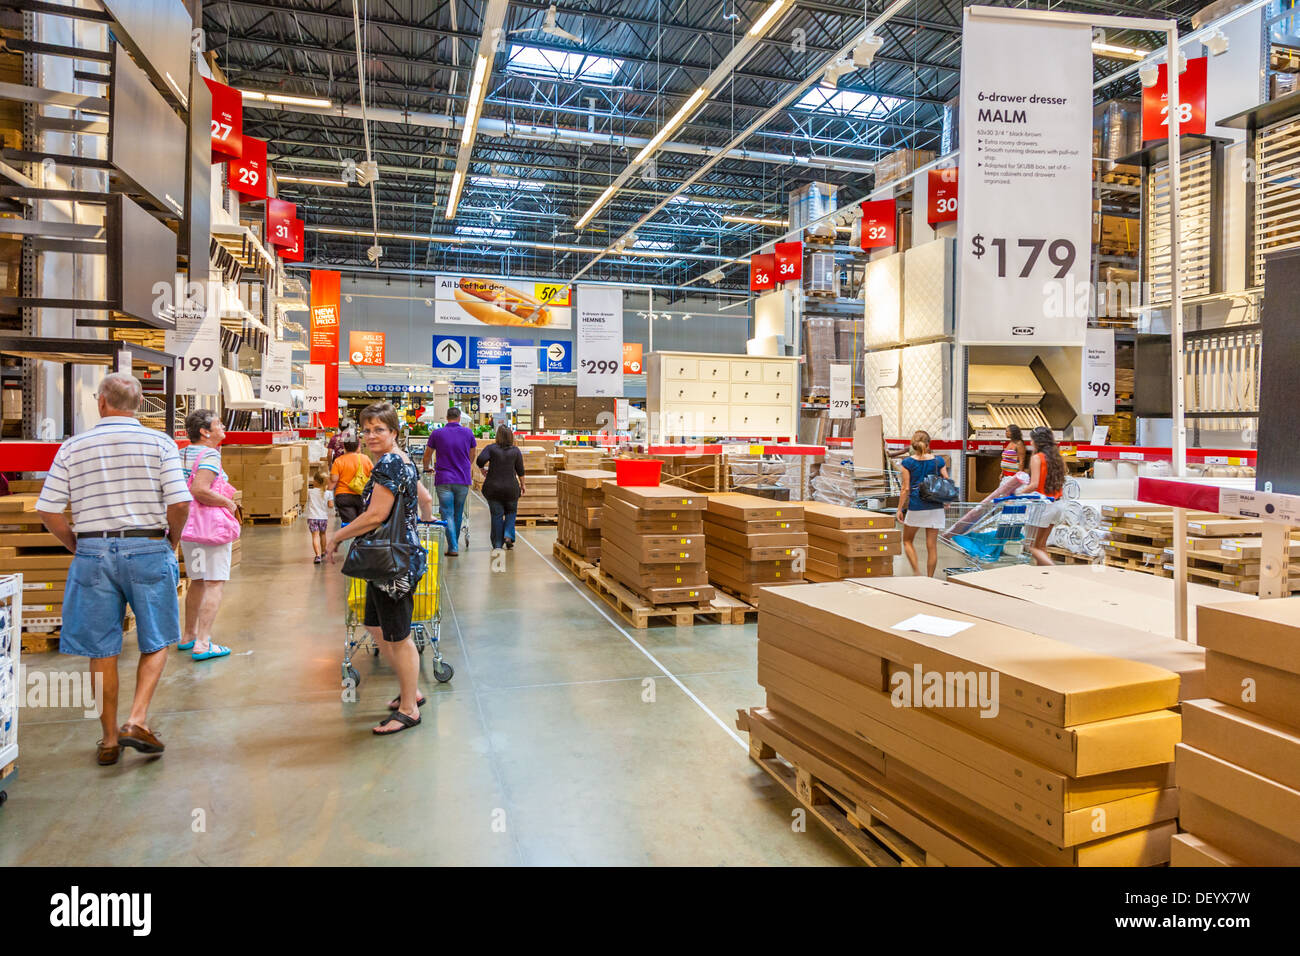 customers inside warehouse part of ikea home store stock photo royalty free image 60849597 alamy. Black Bedroom Furniture Sets. Home Design Ideas